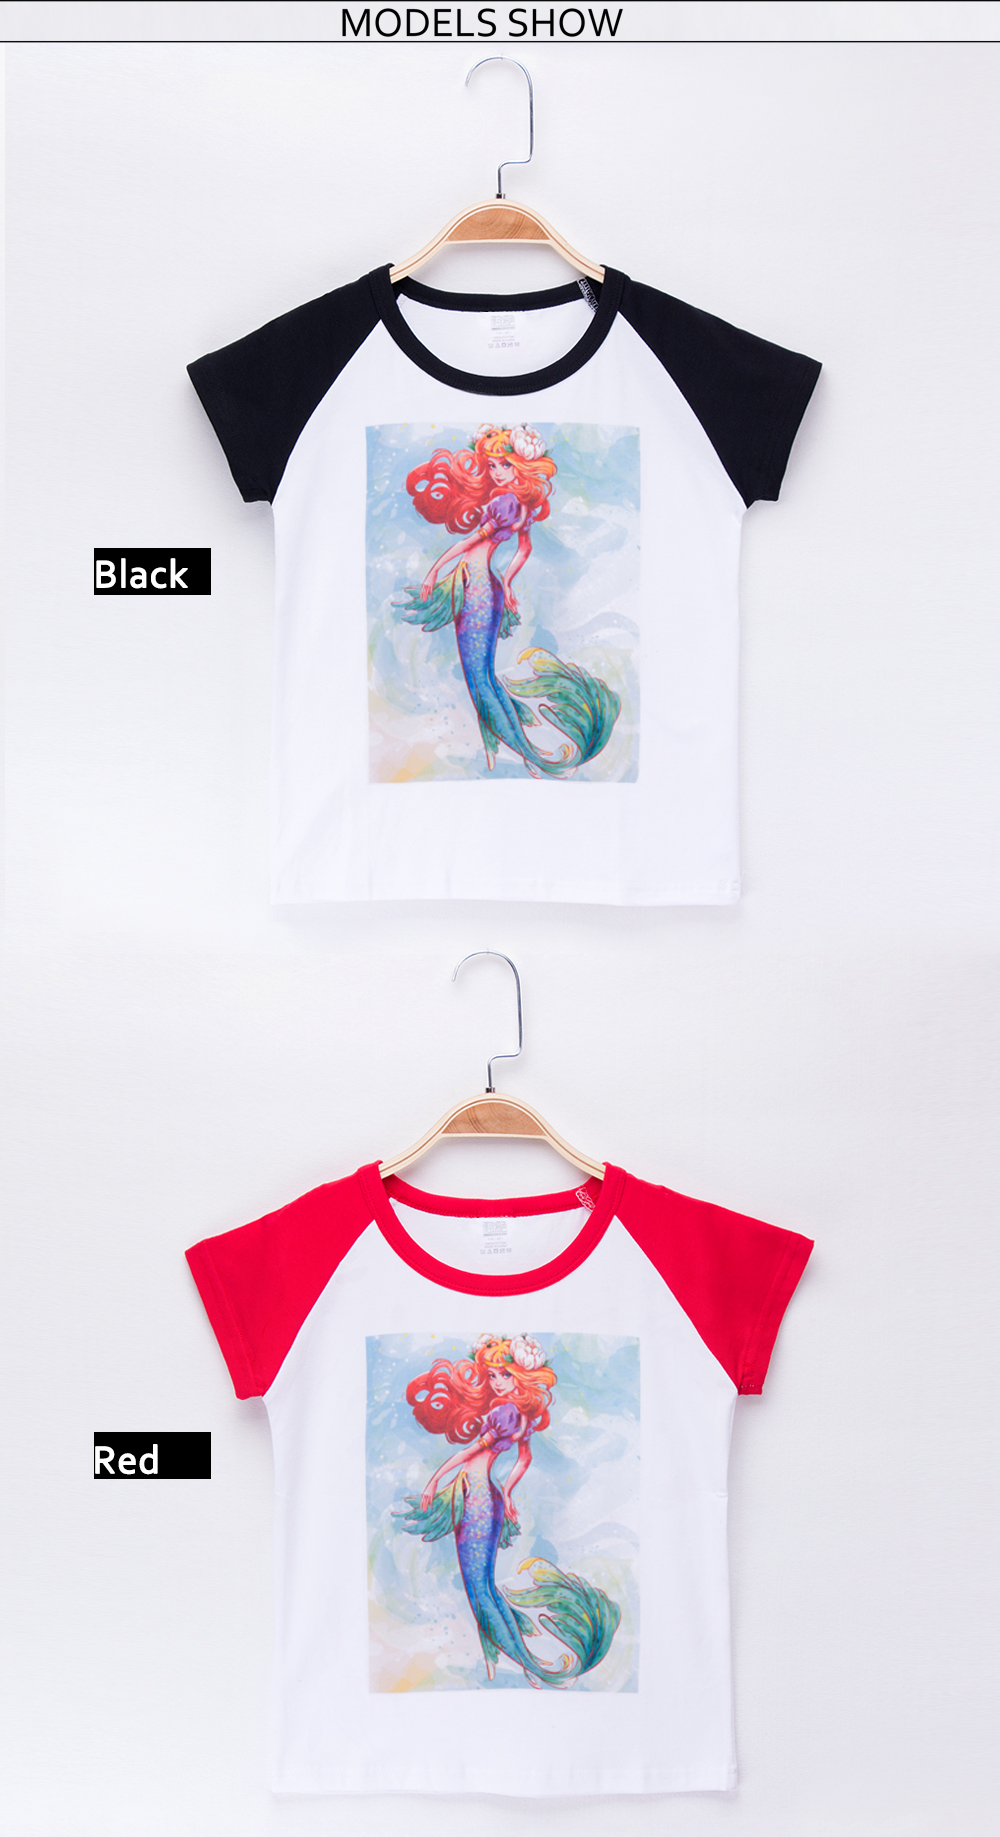 b477b554802 2019 New Children Clothes Kids T-shirts Beautiful Mermaid Hand Painted  Print Cotton Child Baby Boys T Shirt Girl Tops Infant Tee